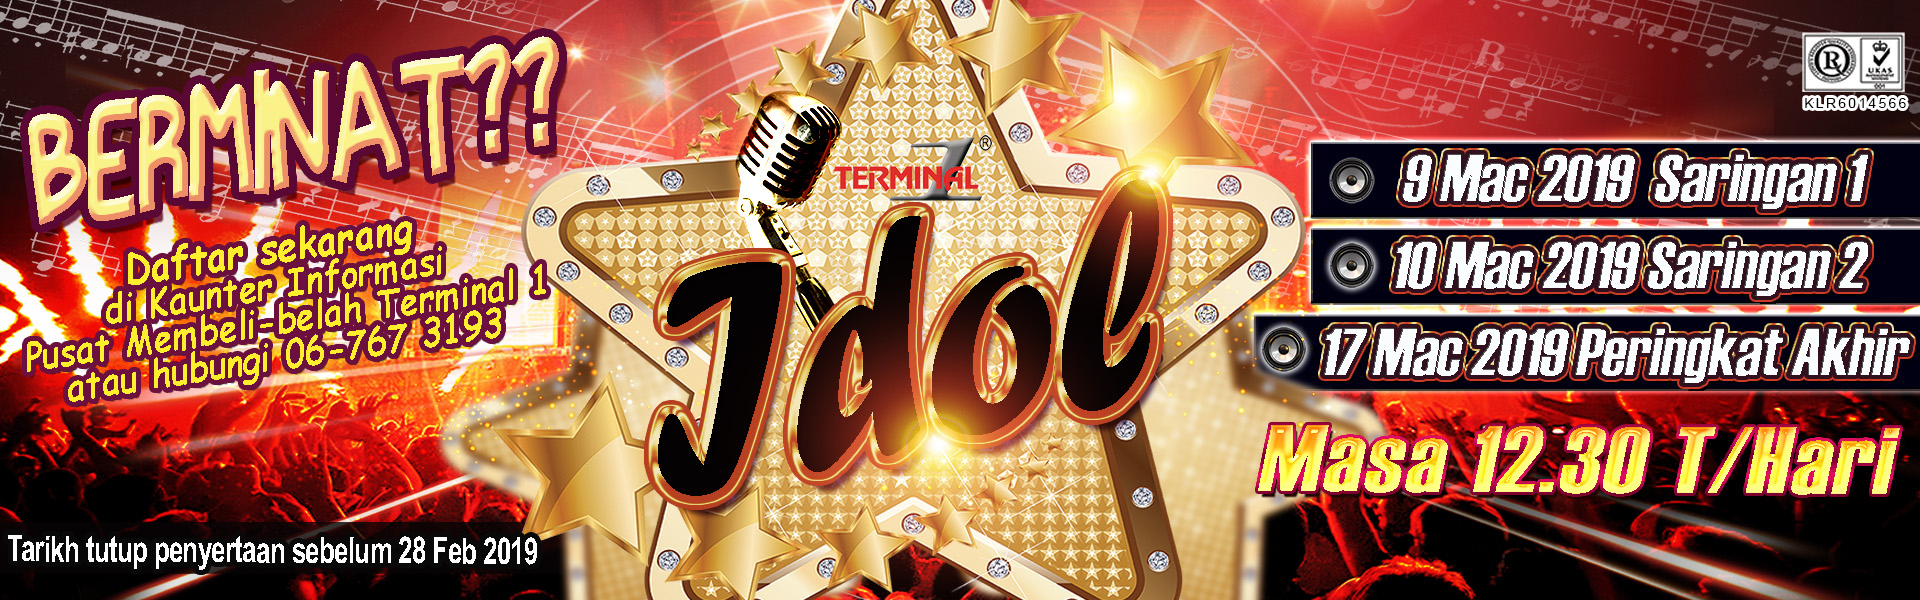 Terminal1sbn-Idol-Competition-2019